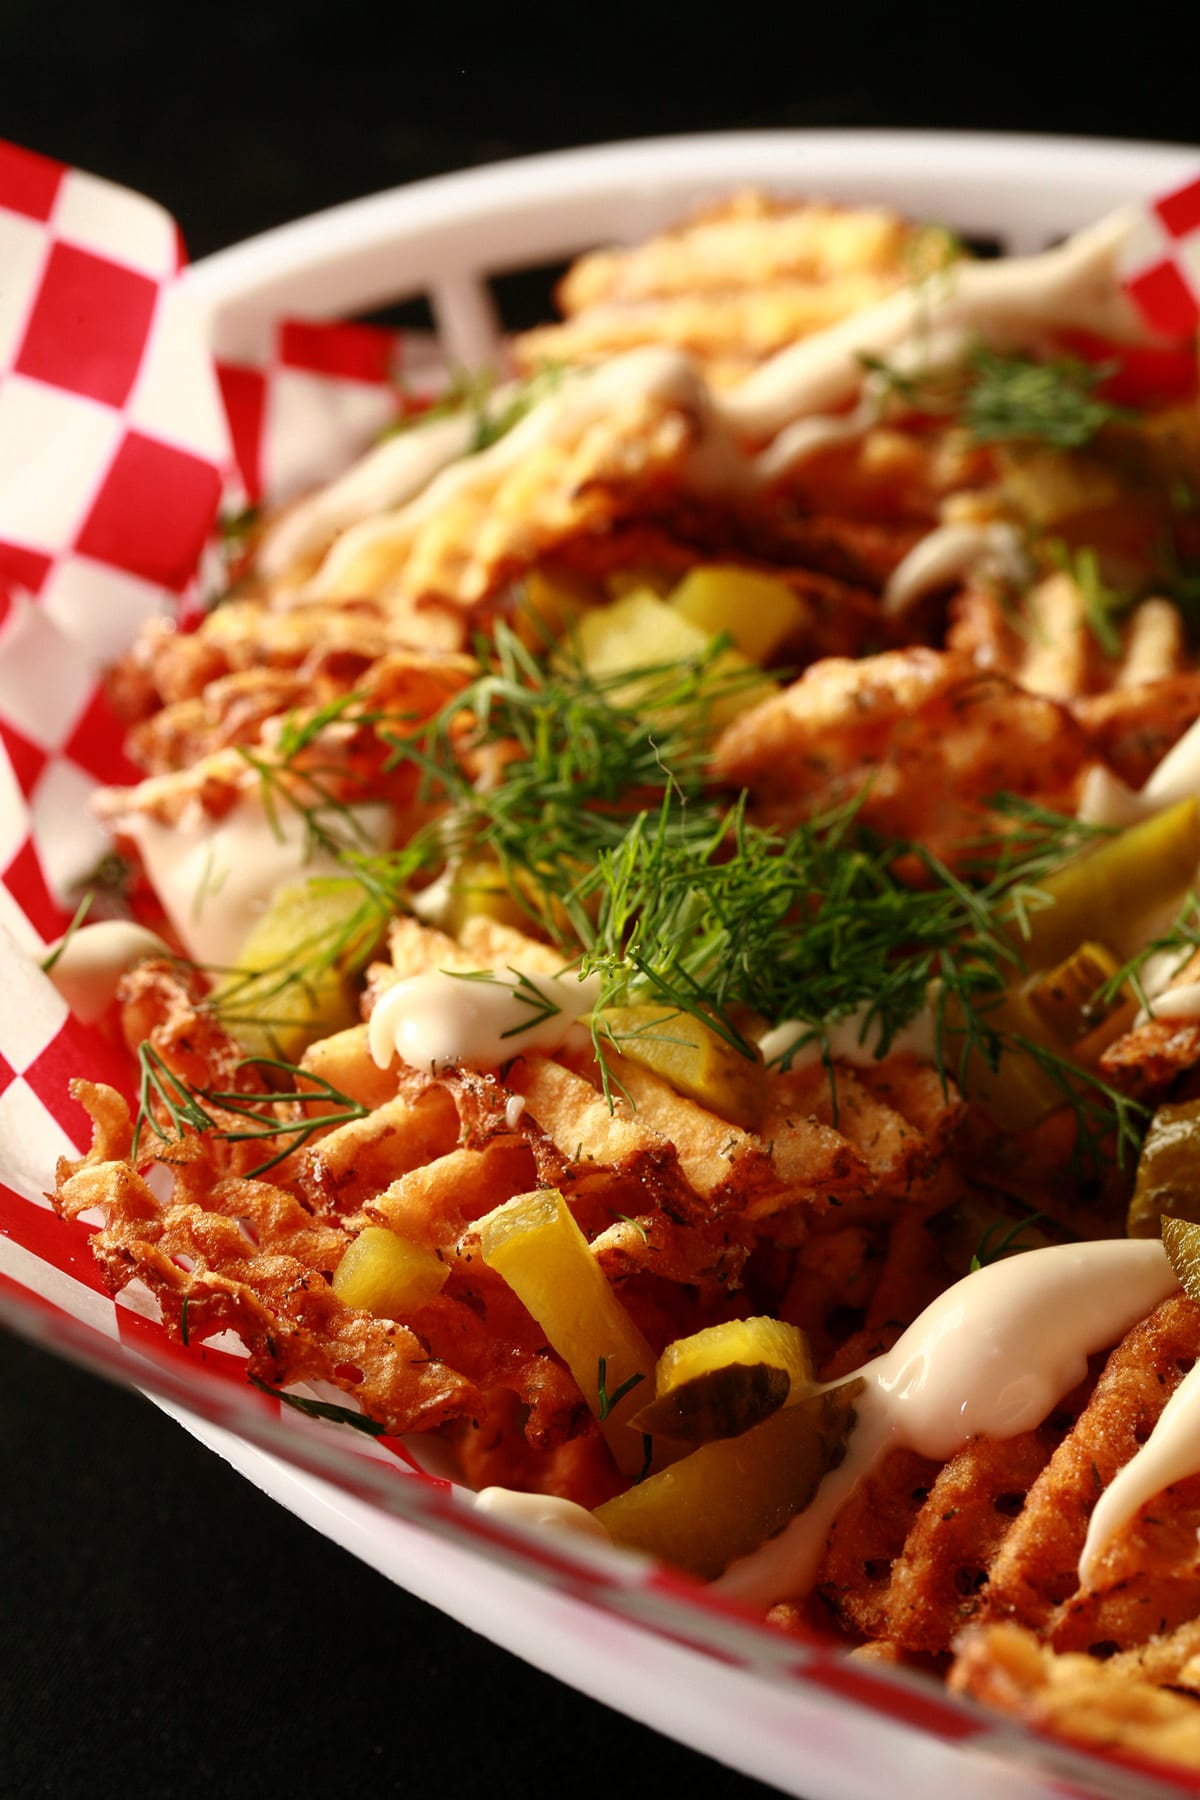 Dill Pickle waffle fries, in a white basket lined with red and white checkered paper. The fries are drizzled with roasted garlic aioi and topped with chopped dill and chopped pickles.